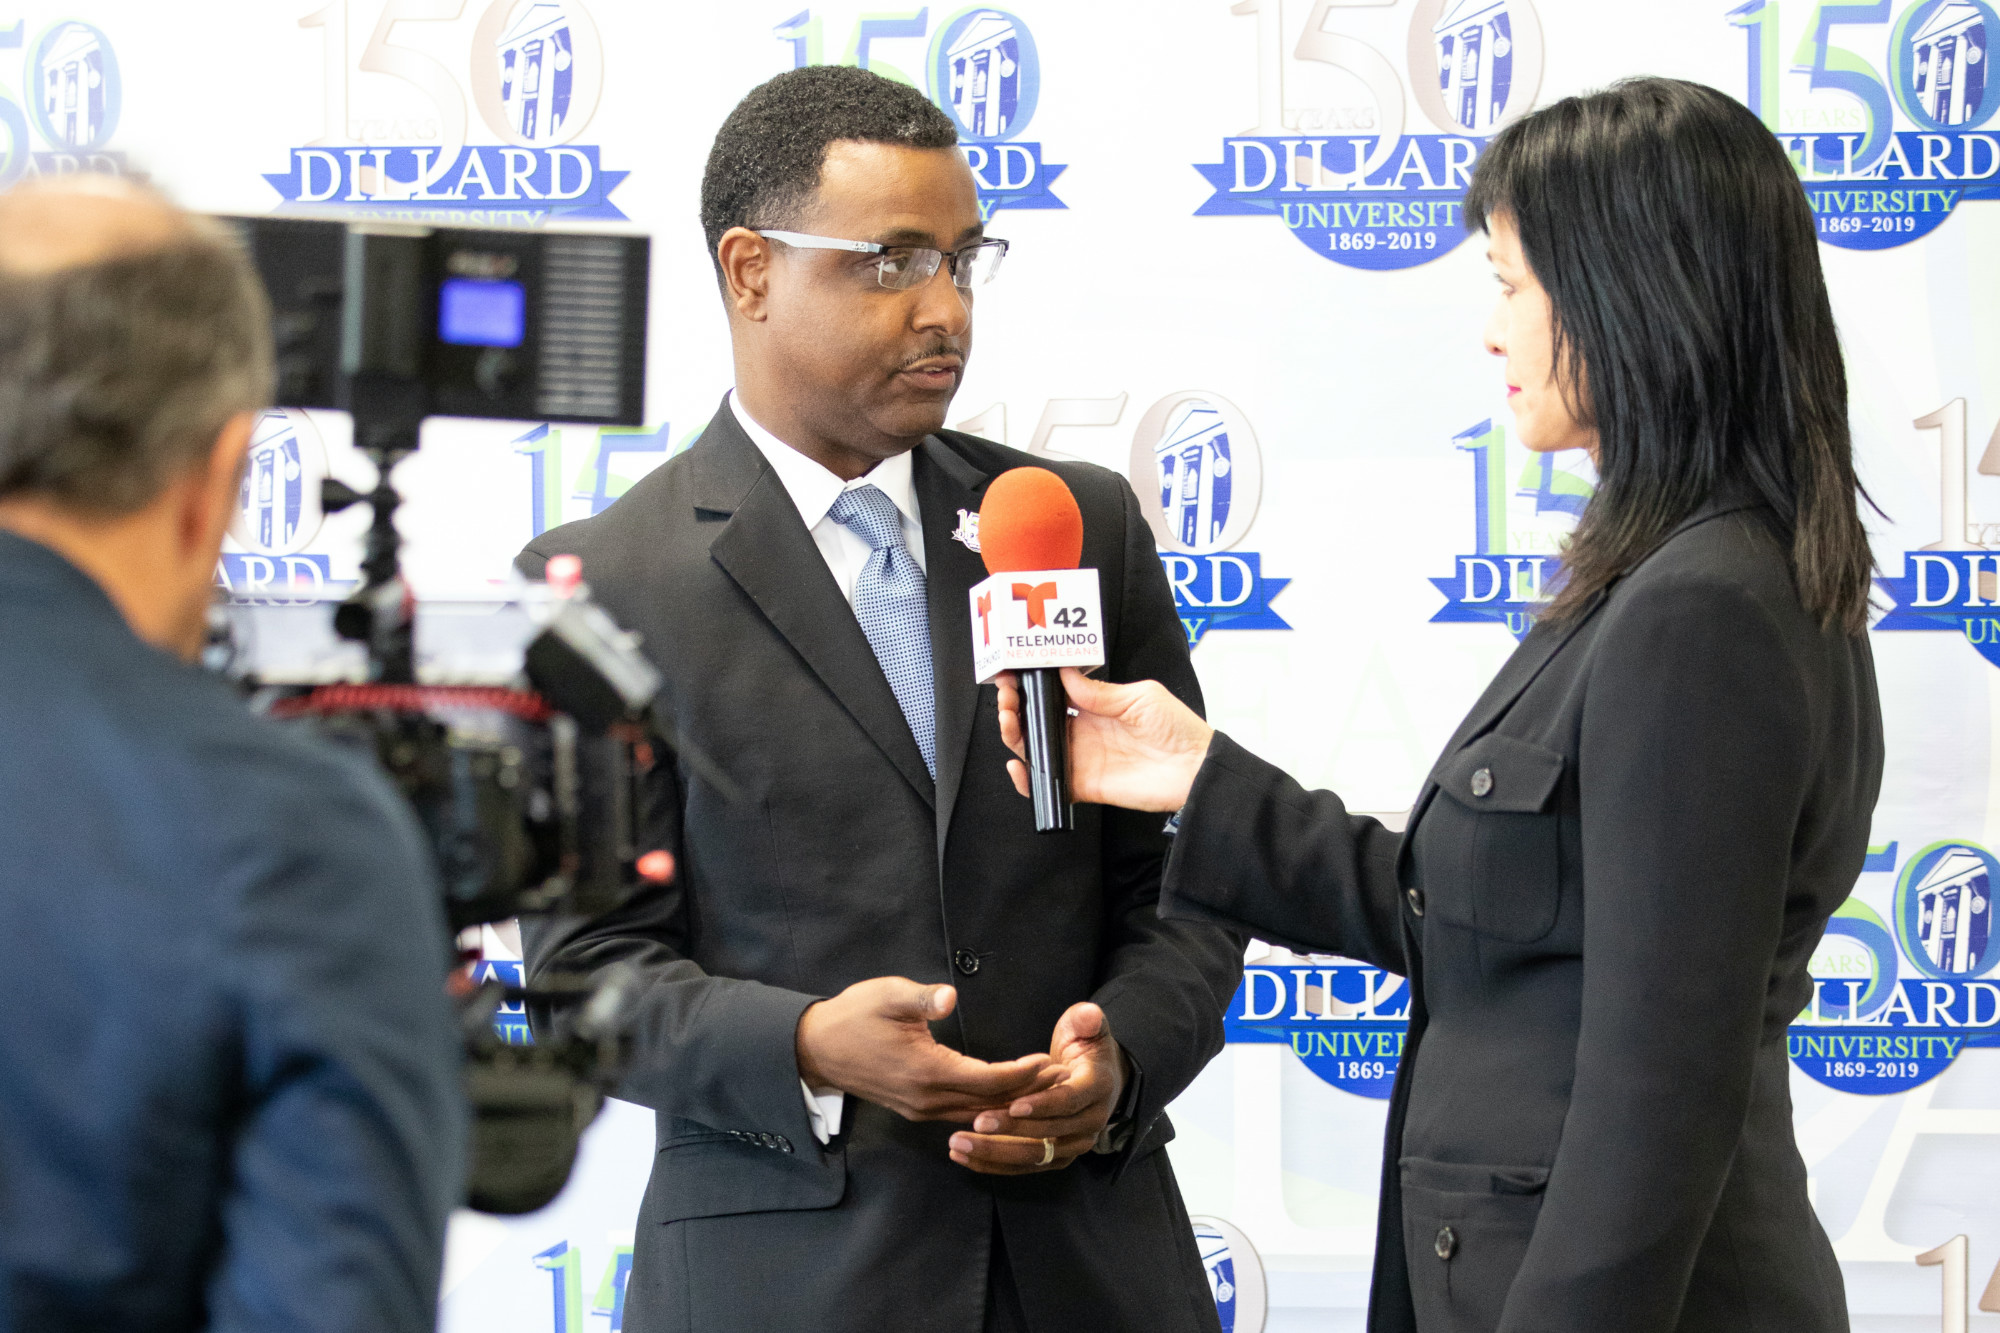 TV Interview with Dillard University's Dr. Marc Barnes